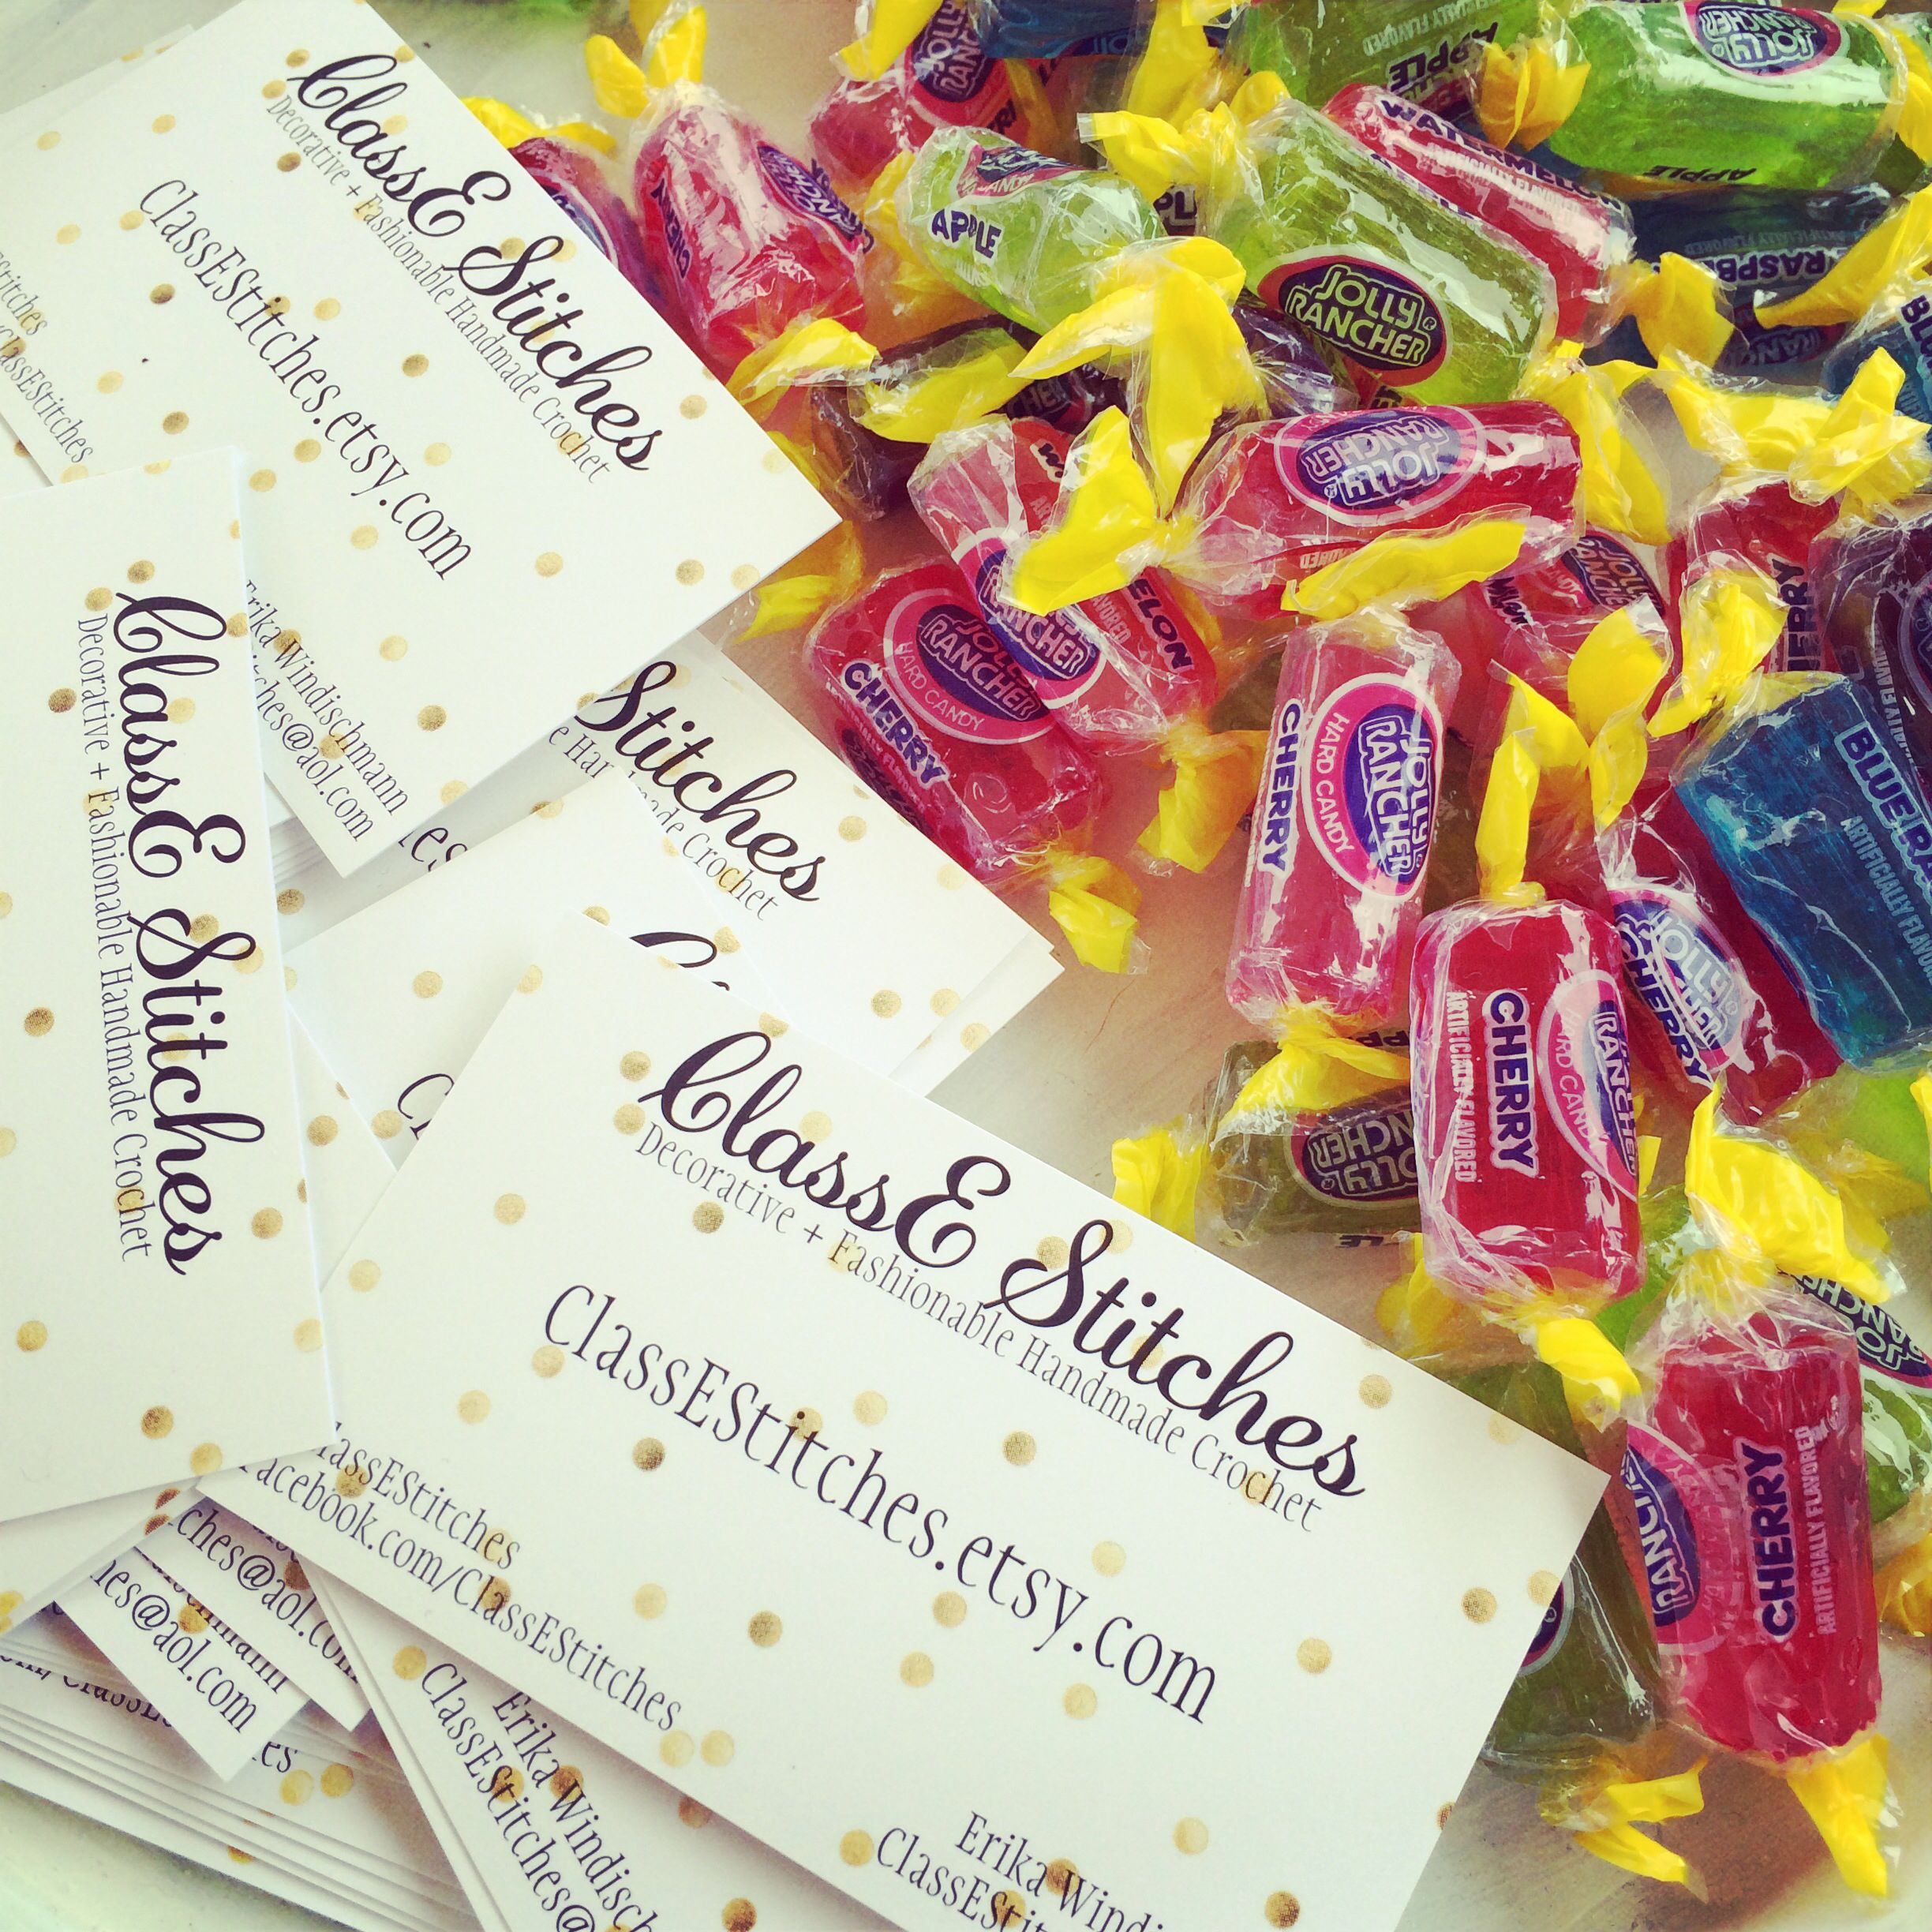 Business cards and candy craft show display with images